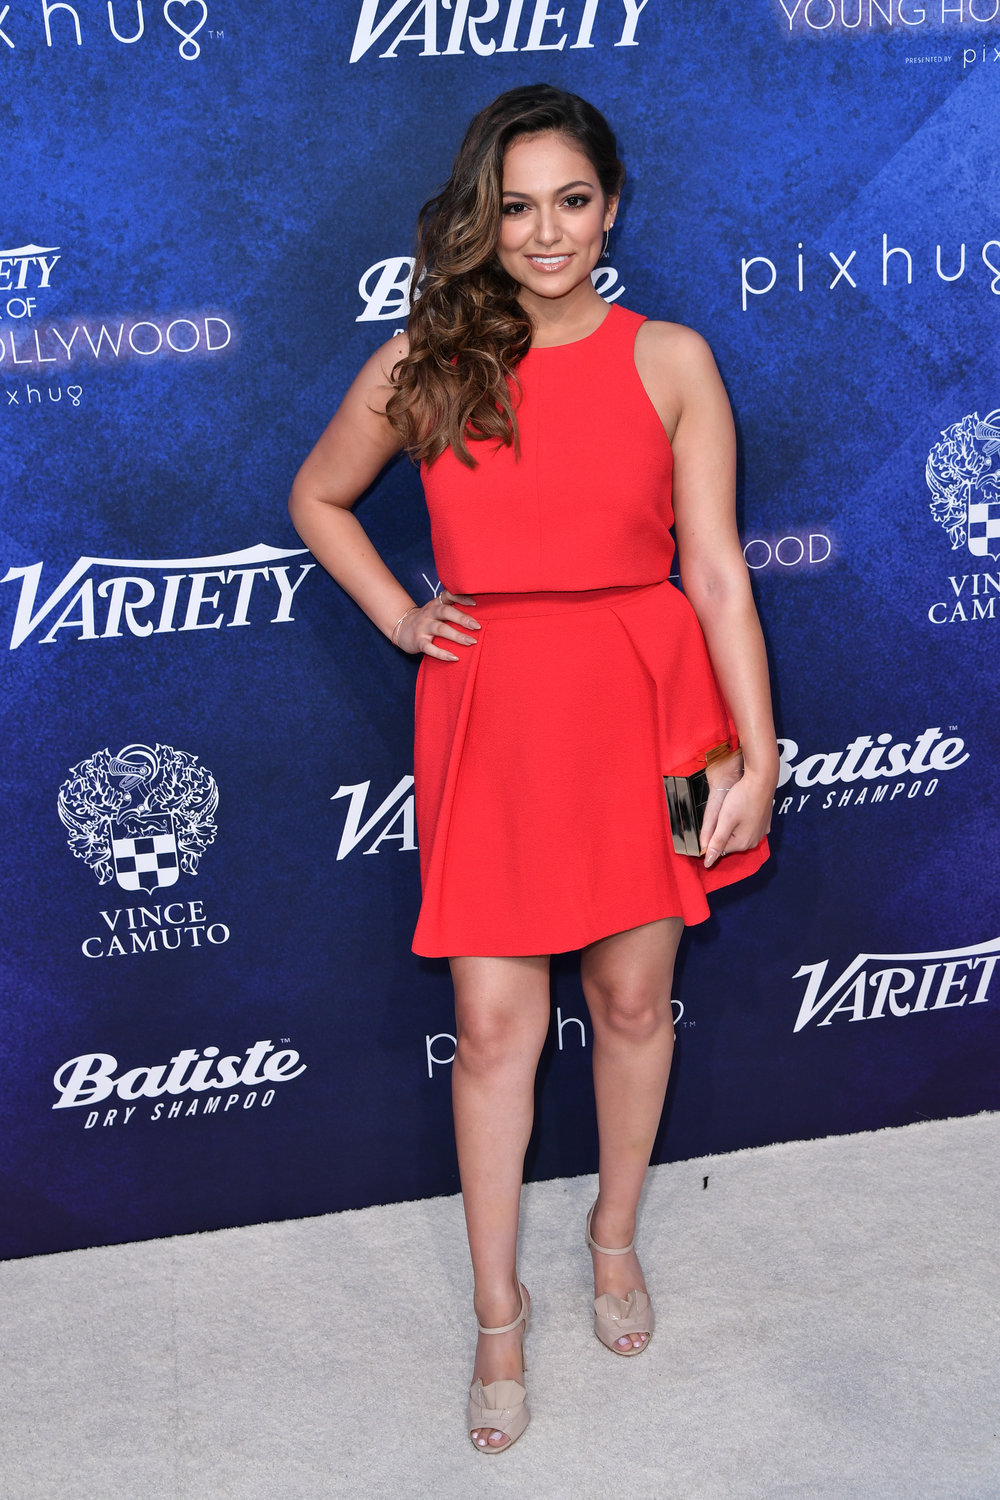 Bethany Mota carries the Vince Camuto Aleni Clutch.